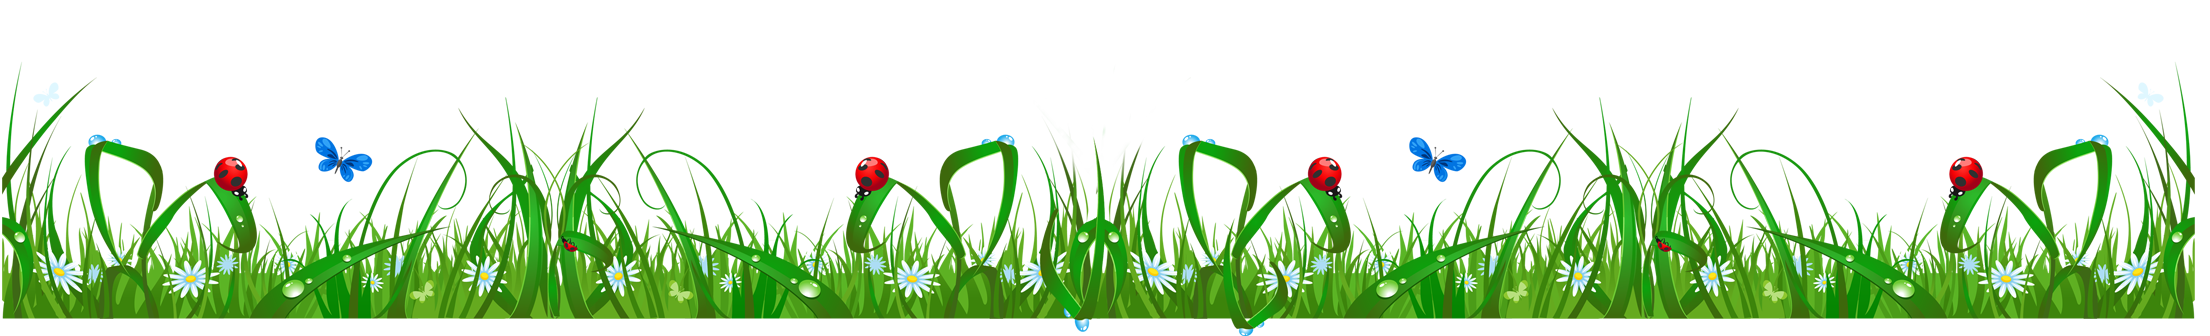 Grass and Flowers Clip Art.